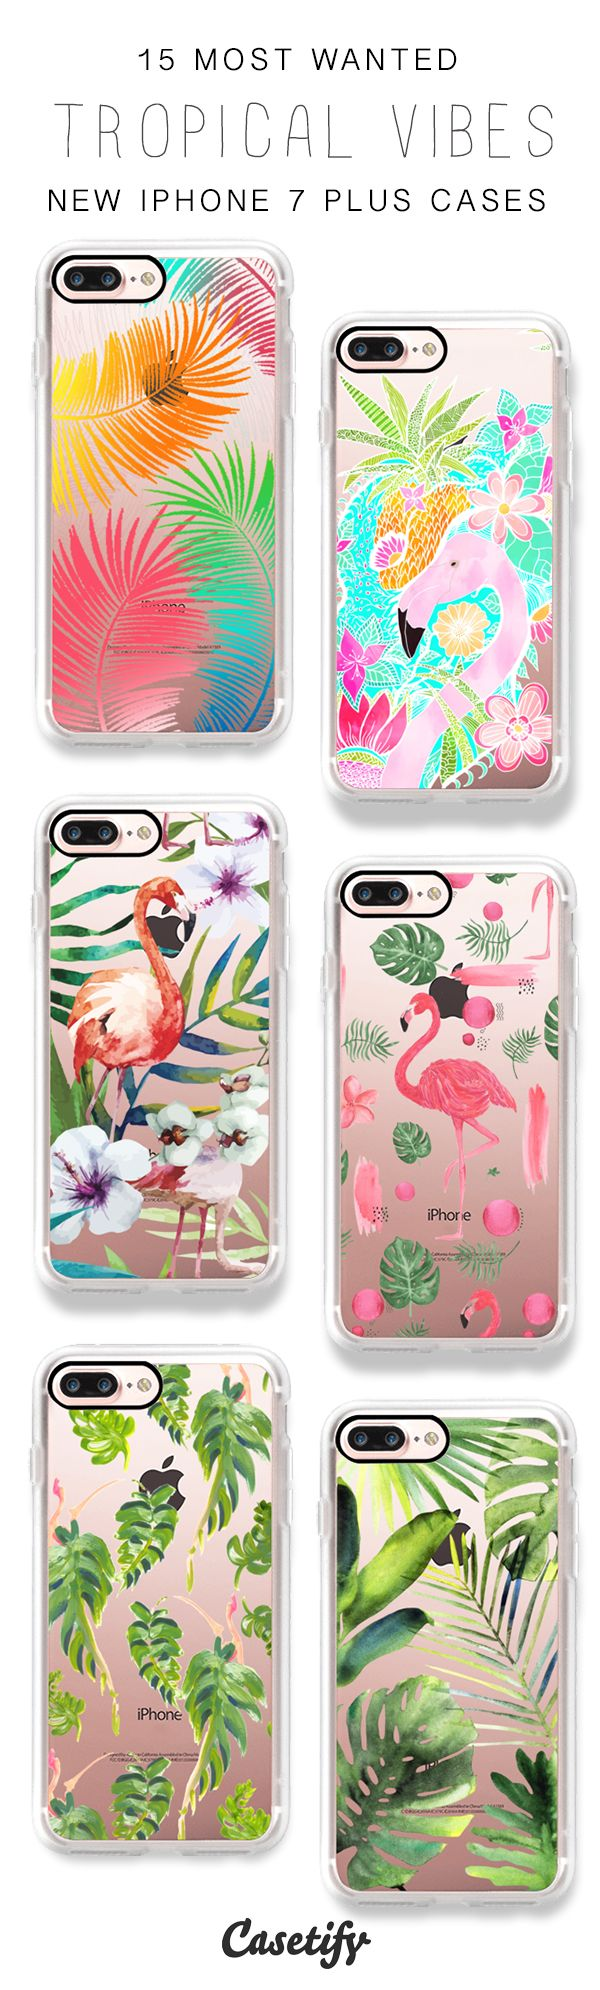 Feel the tropical vibes! 15 Most Wanted Tropical iPhone 7 Cases and iPhone 7 Plus Cases here > https://www.casetify.com/artworks/TaKdOGyHms